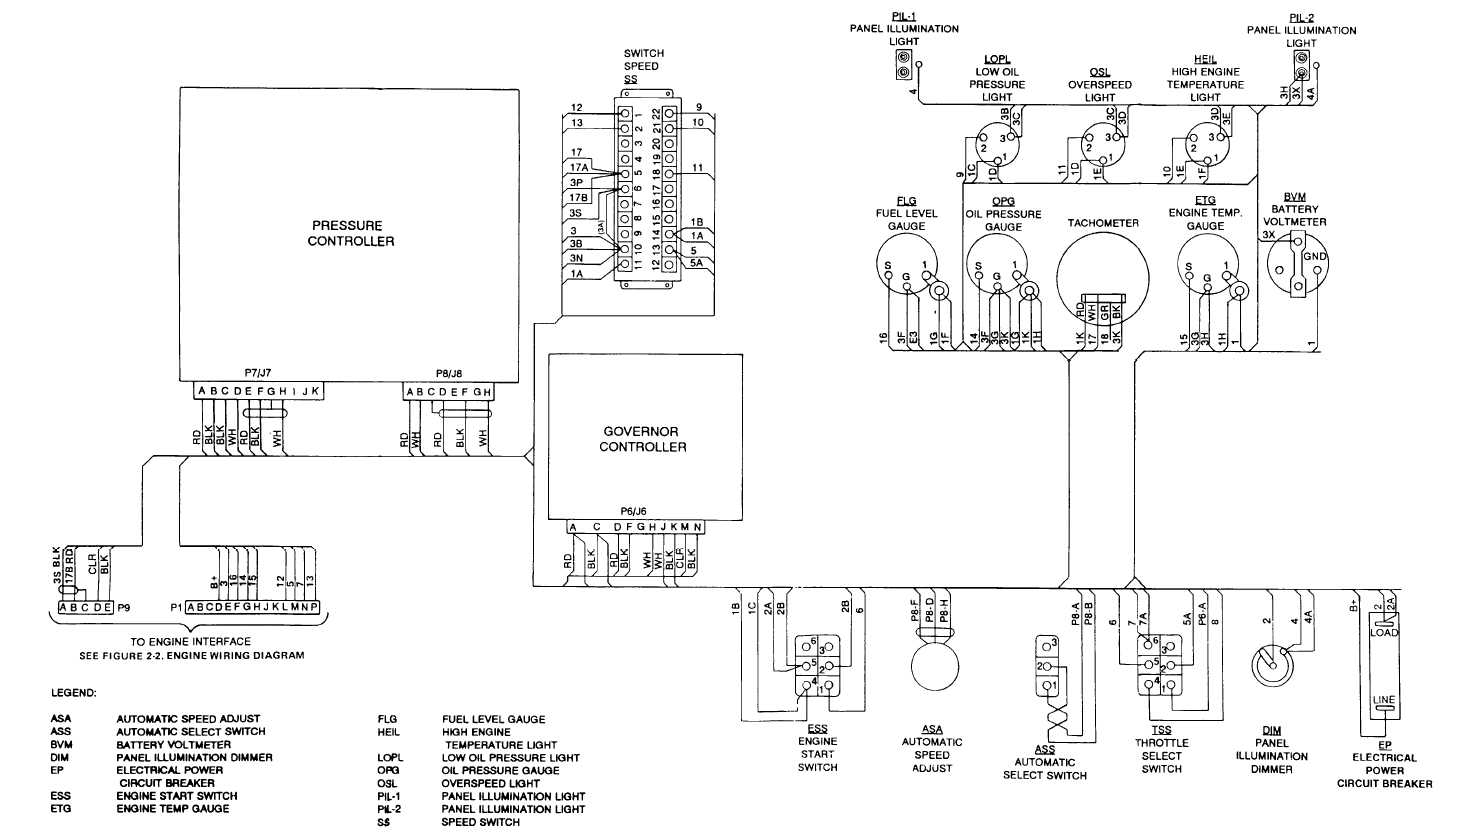 figure 2 1 control panel wiring diagram sheet 1 of 4 rh waterpumps tpub com electrical control diagram hvac electrical controlling diagram